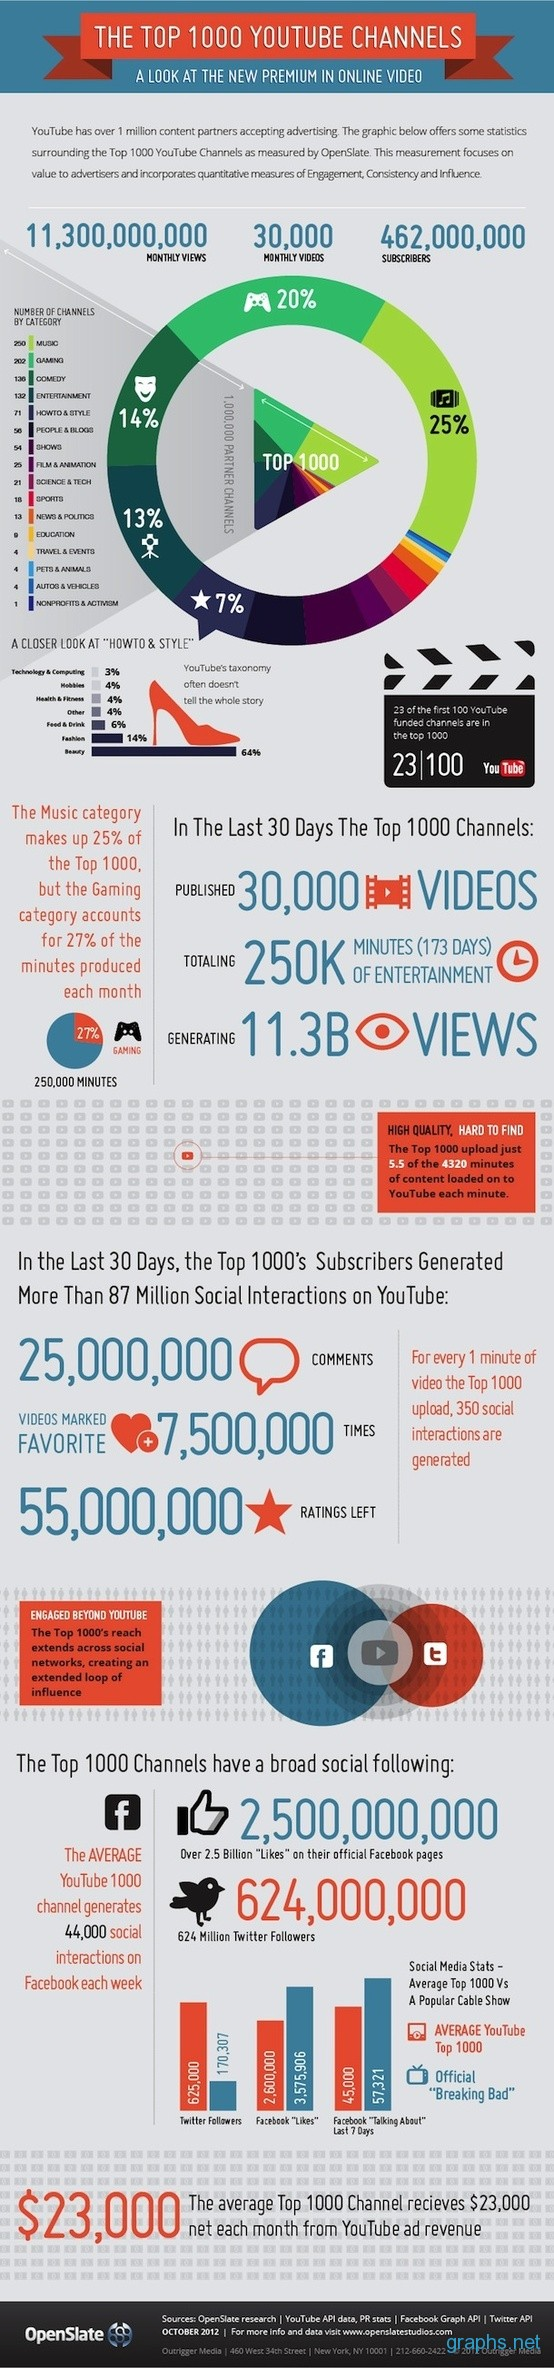 Top 1000 YouTube Channels